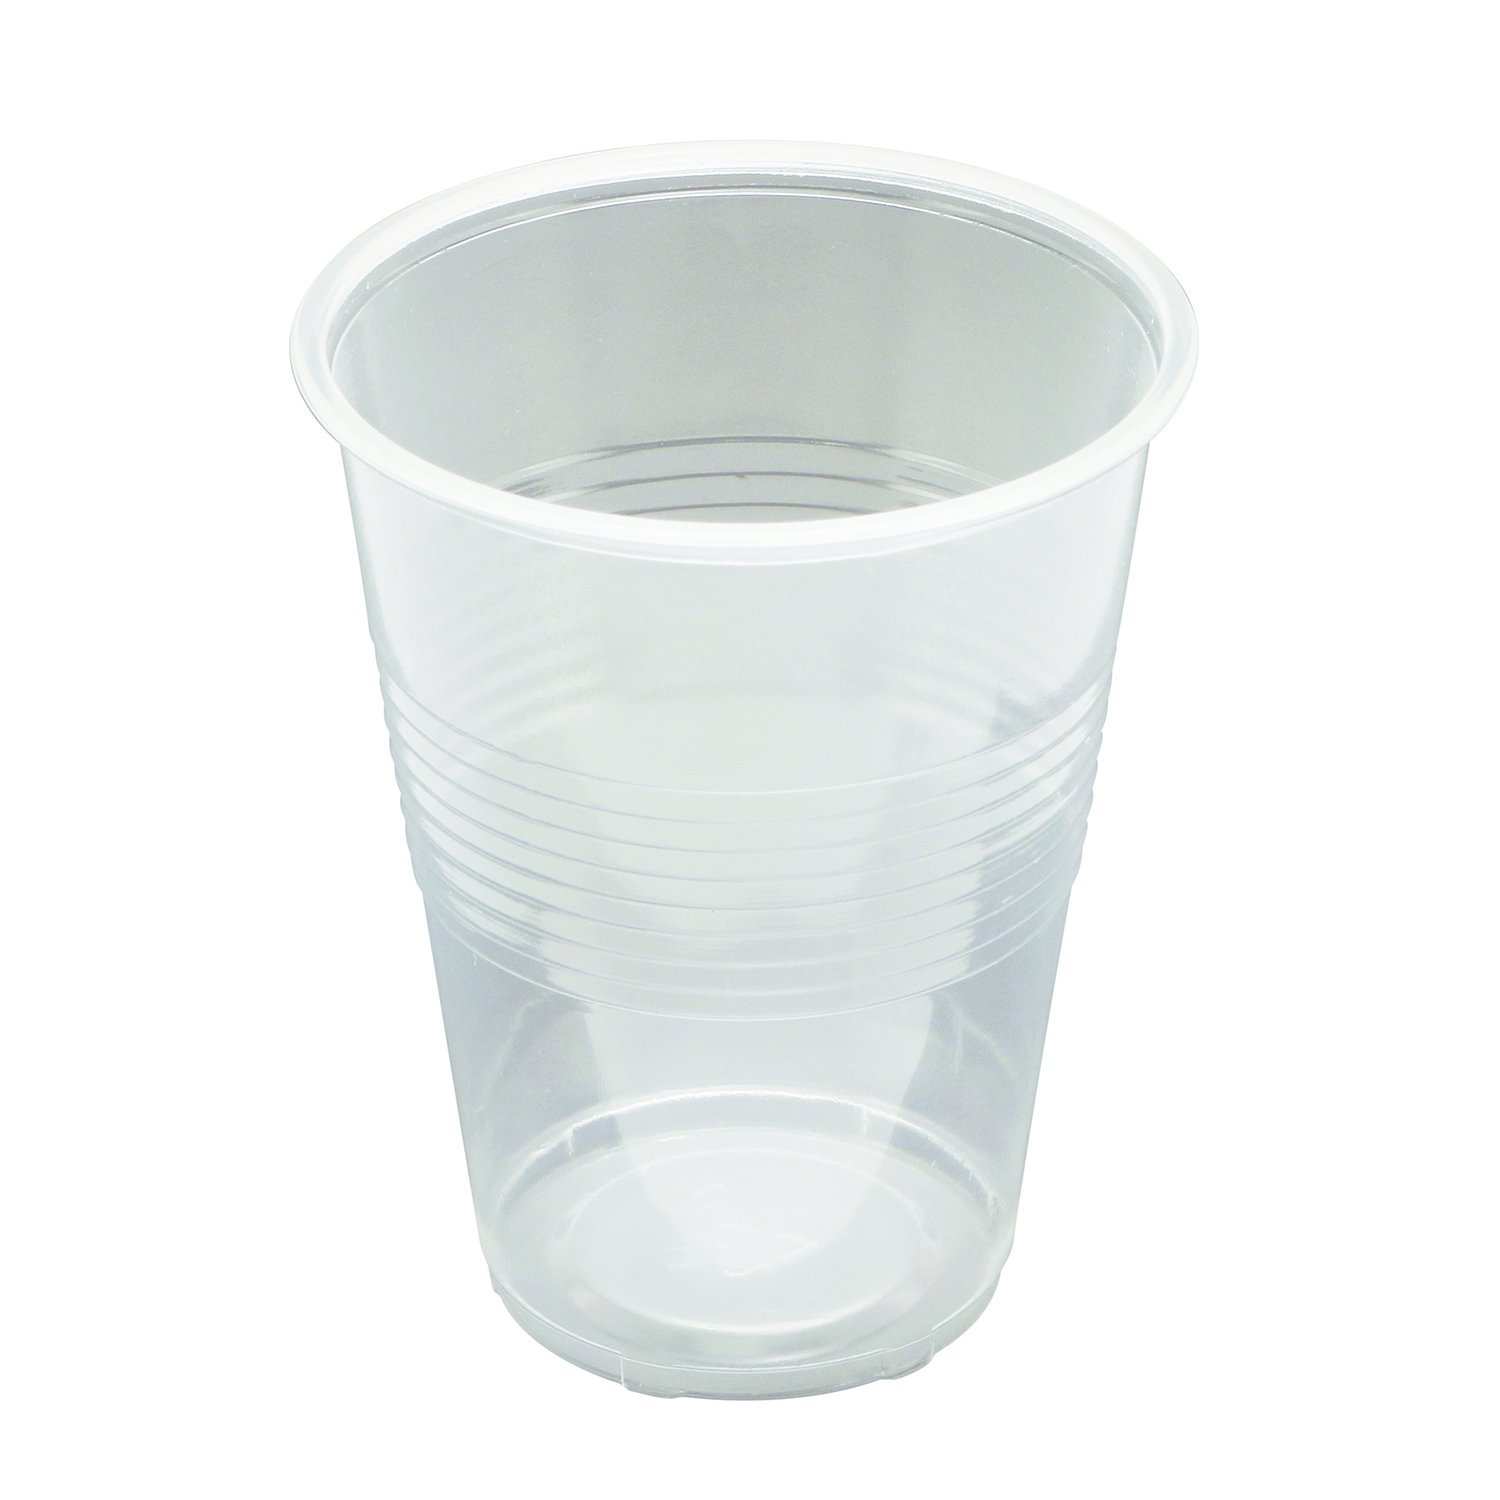 Prime-Line MP45000 9 oz. Plastic Cup for Cold Liquids, Translucent, Individually Wrapped, Case of 1,000 Cups